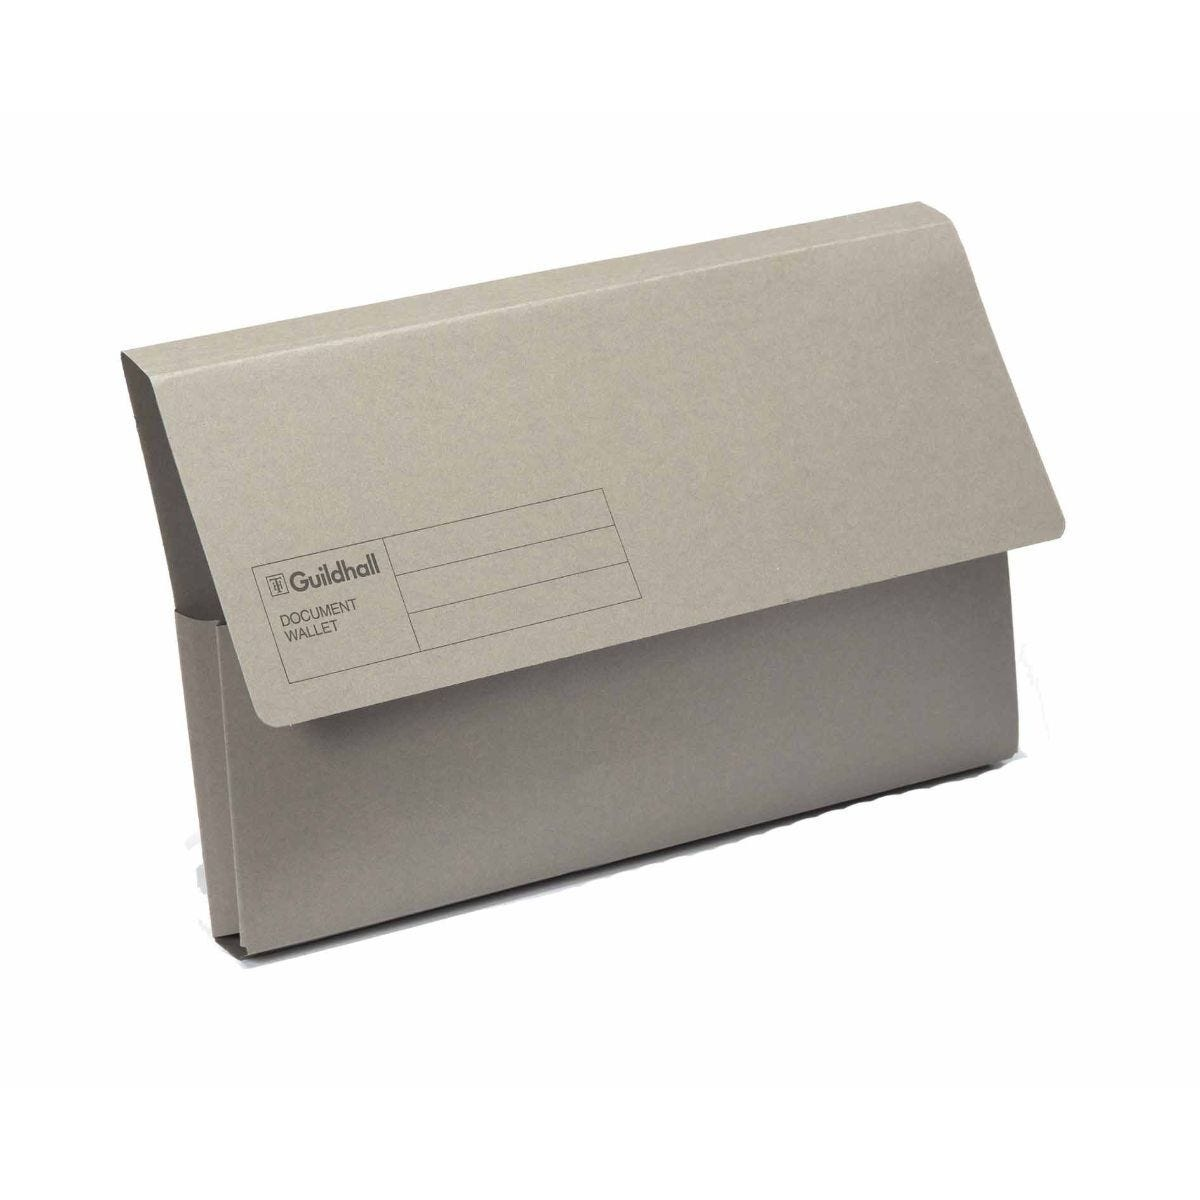 Exacompta Guildhall Document Wallet Foolscap Pack of 50 285gsm Grey